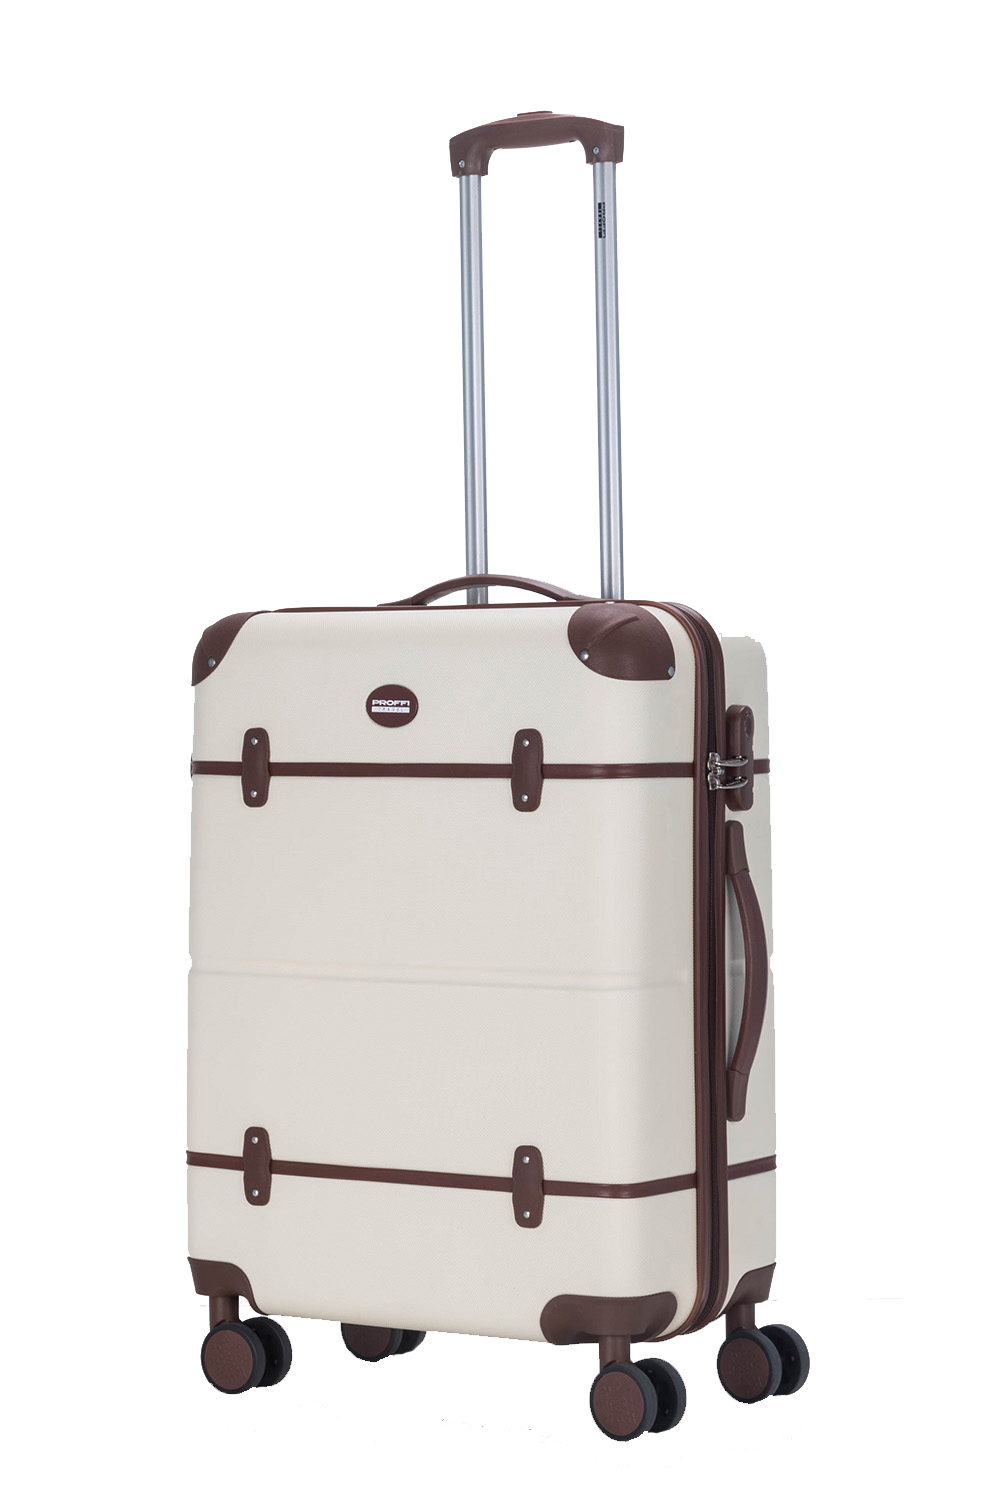 Plastic suitcase PROFFI TRAVEL Tour Vintage PH9729, with combination lock, beige, L [available from 10 11] black suitcase profi travel ph8865 m plastic with retractable handle on wheels